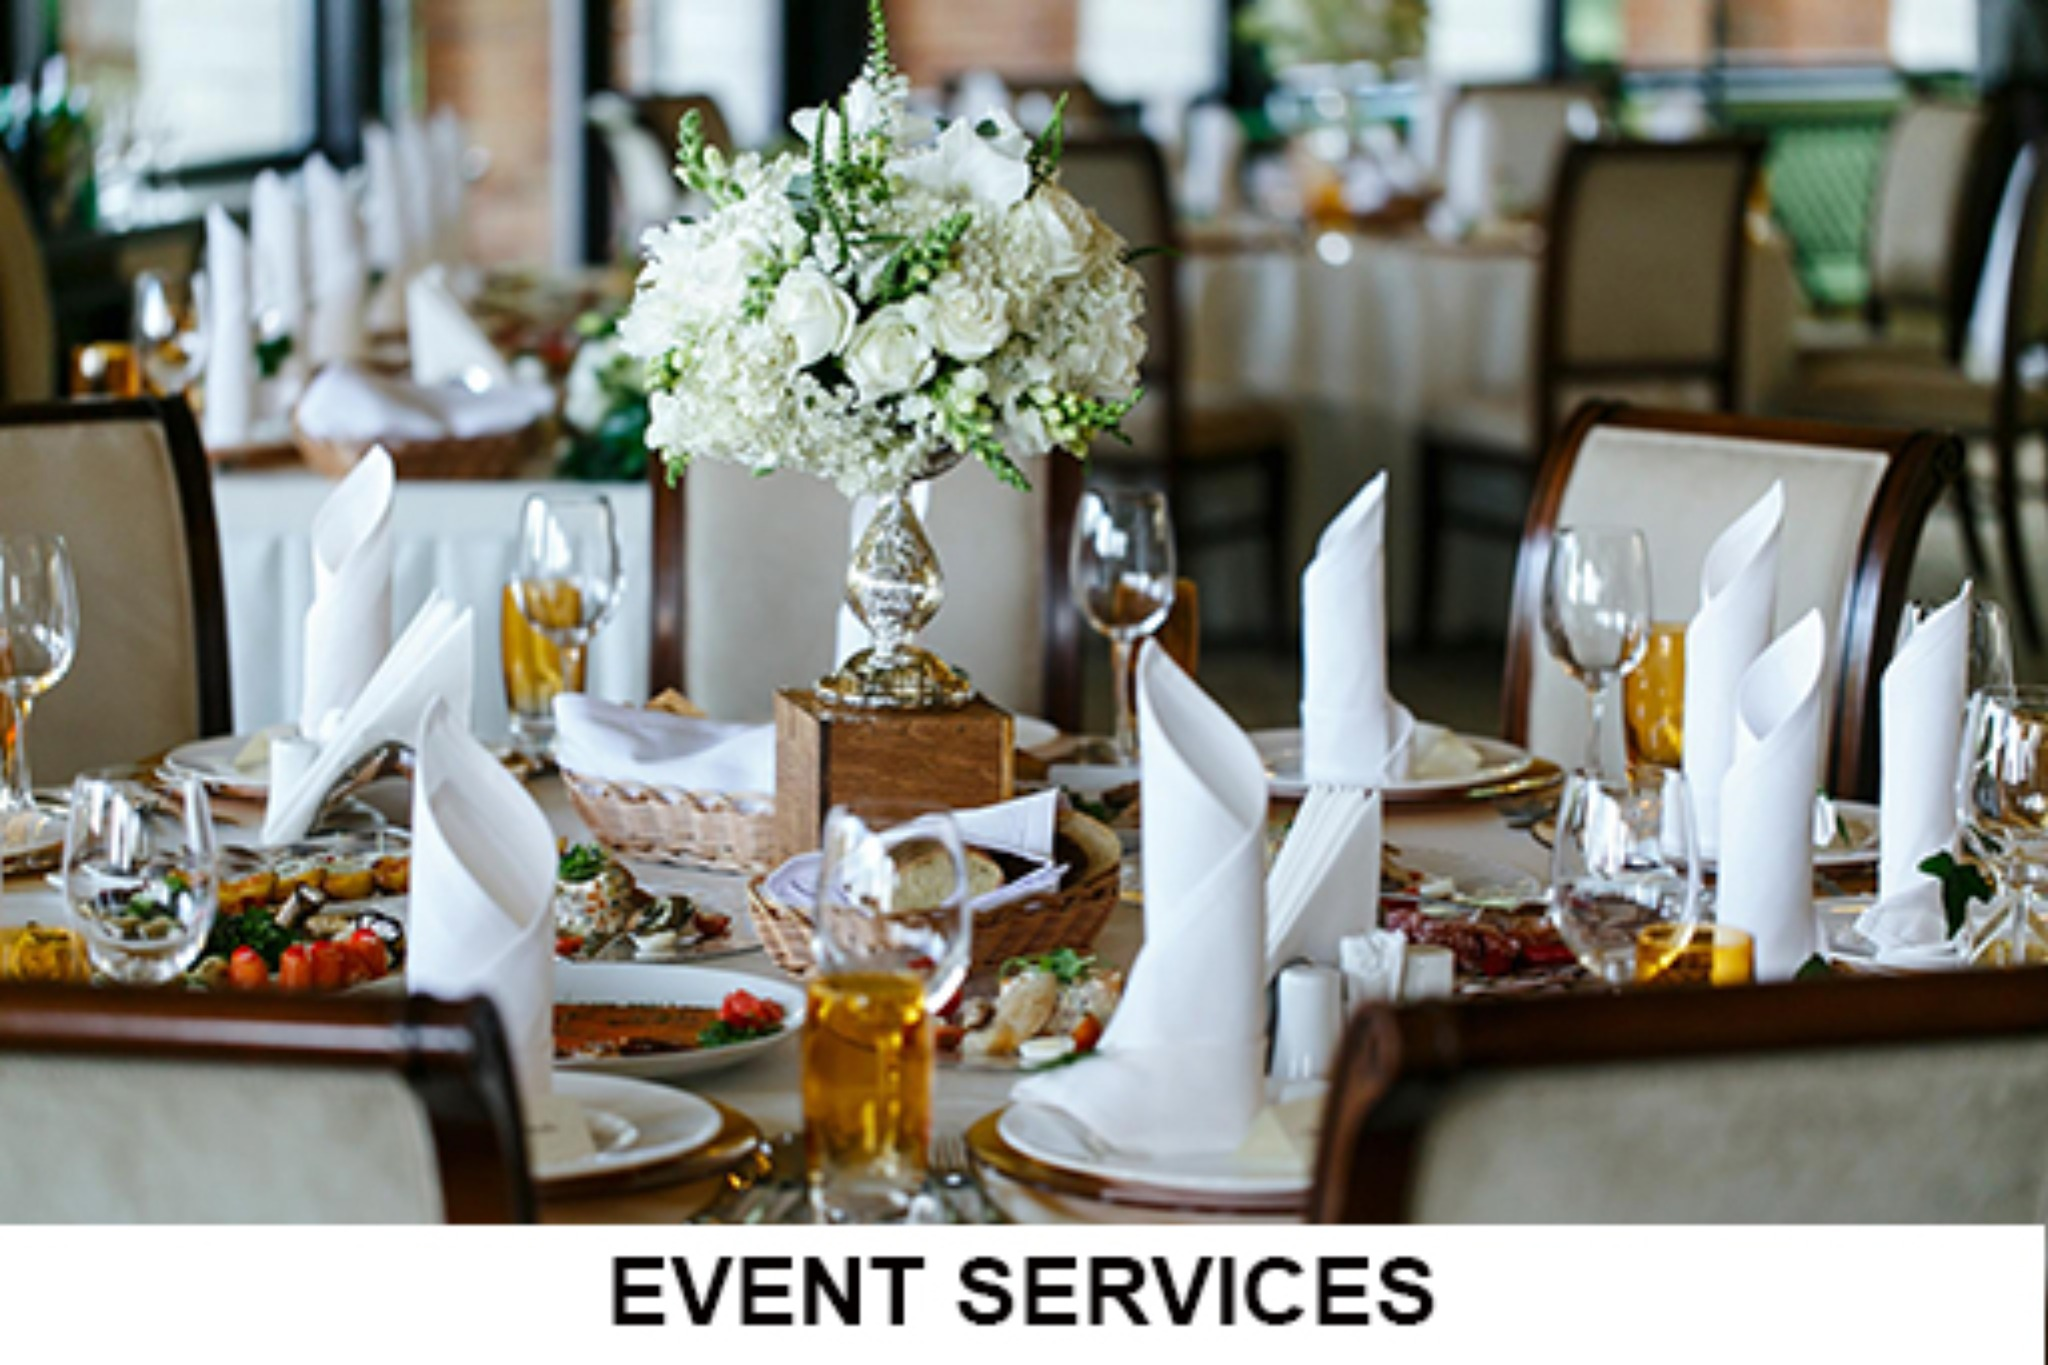 Event Services Planning, Event Location Planning, Event Decoration